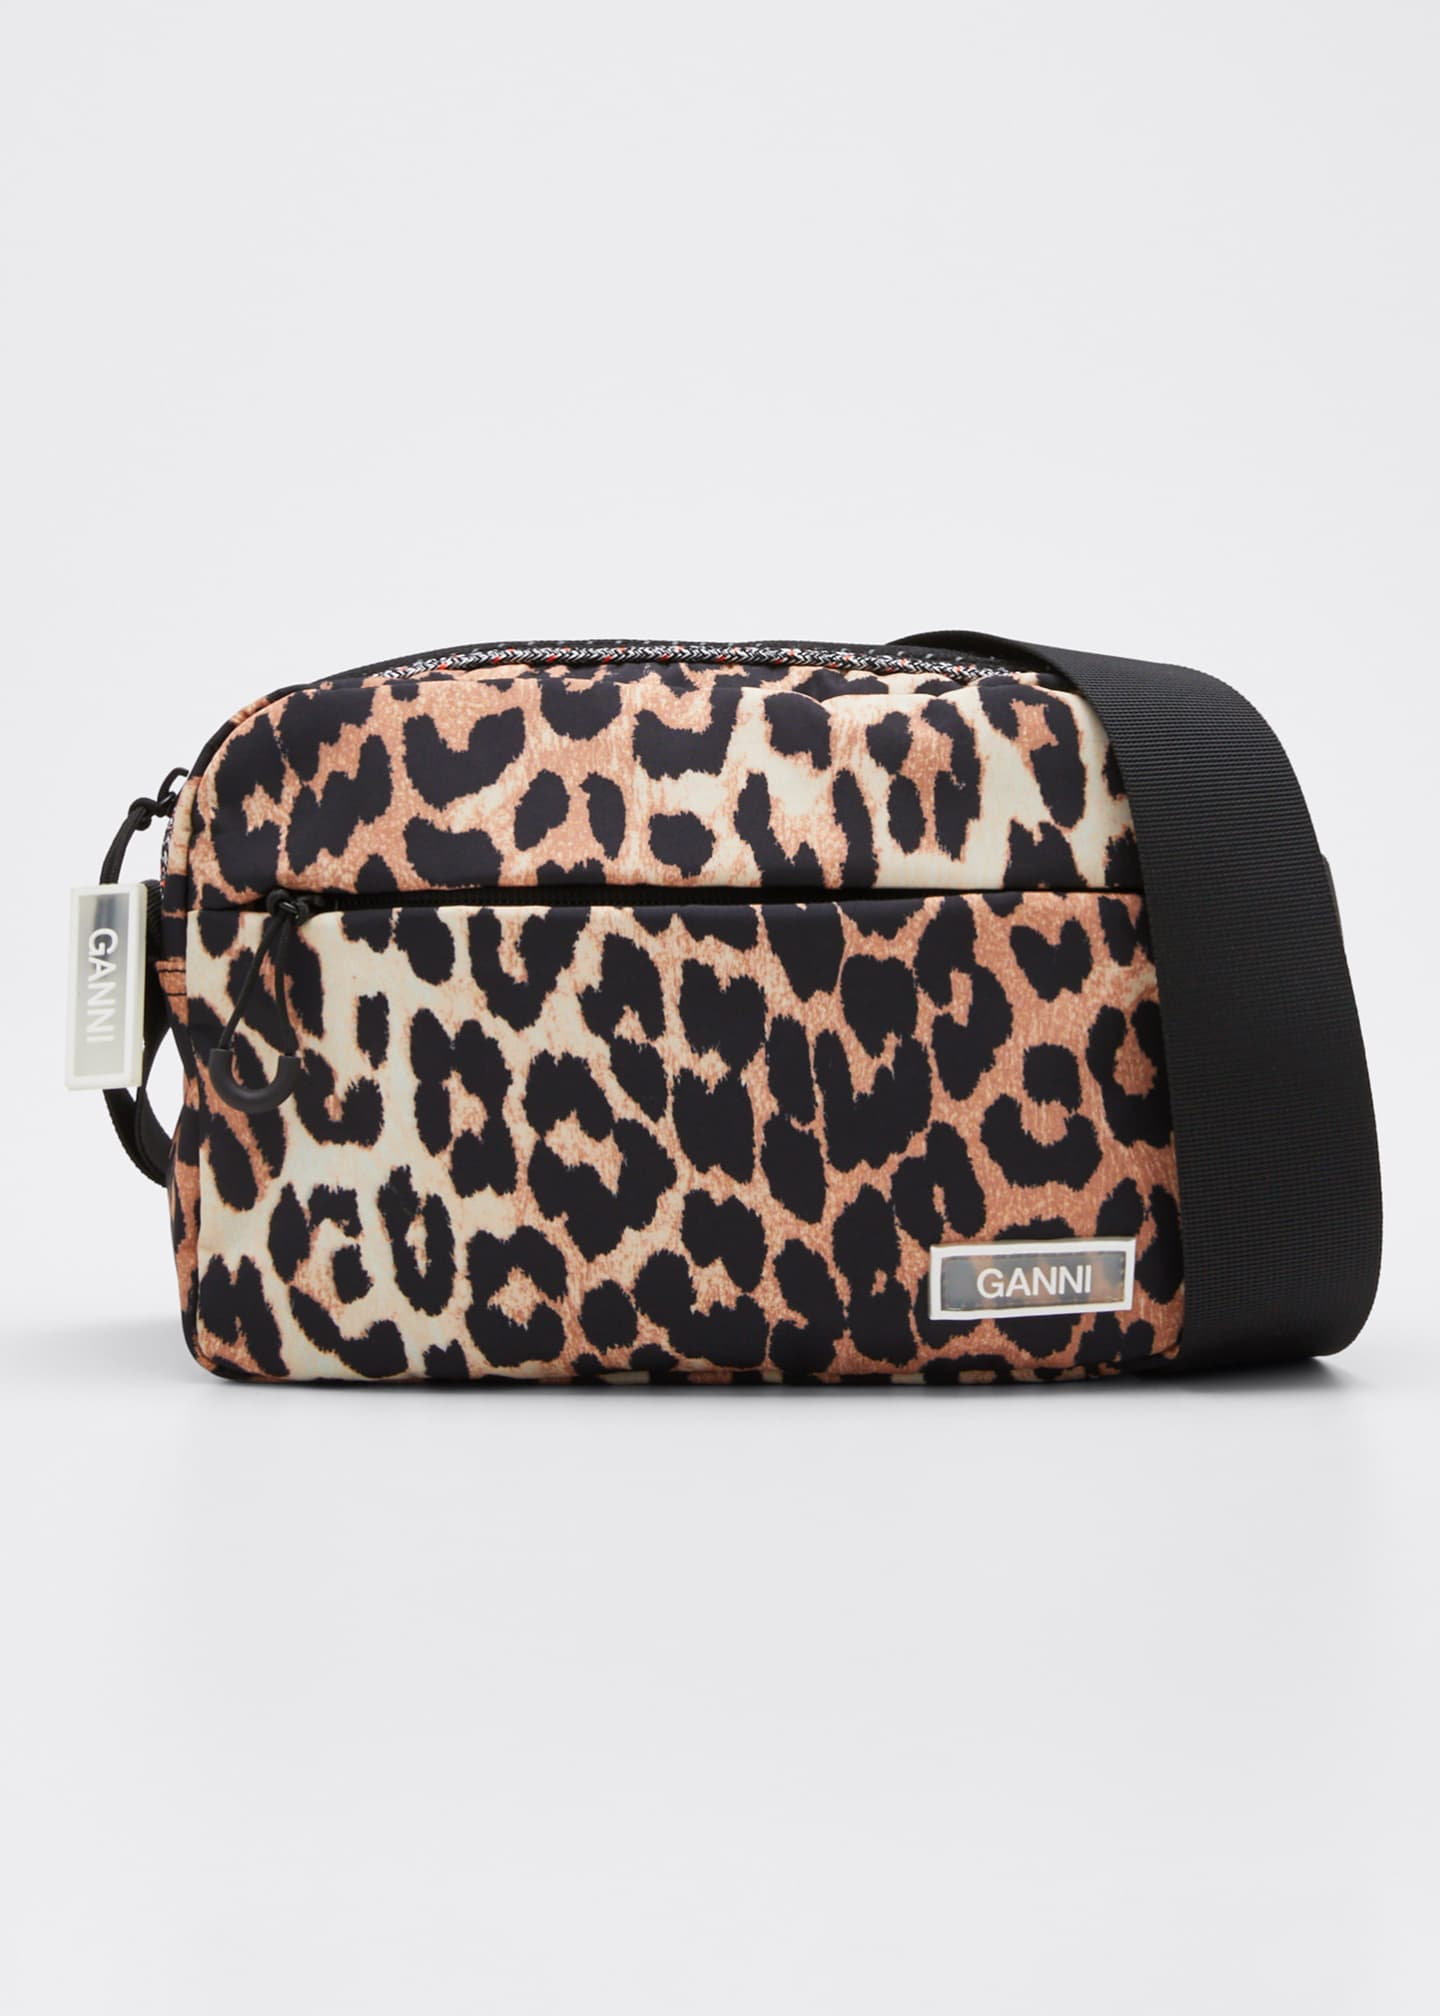 Ganni Nylon Leopard Crossbody Bag